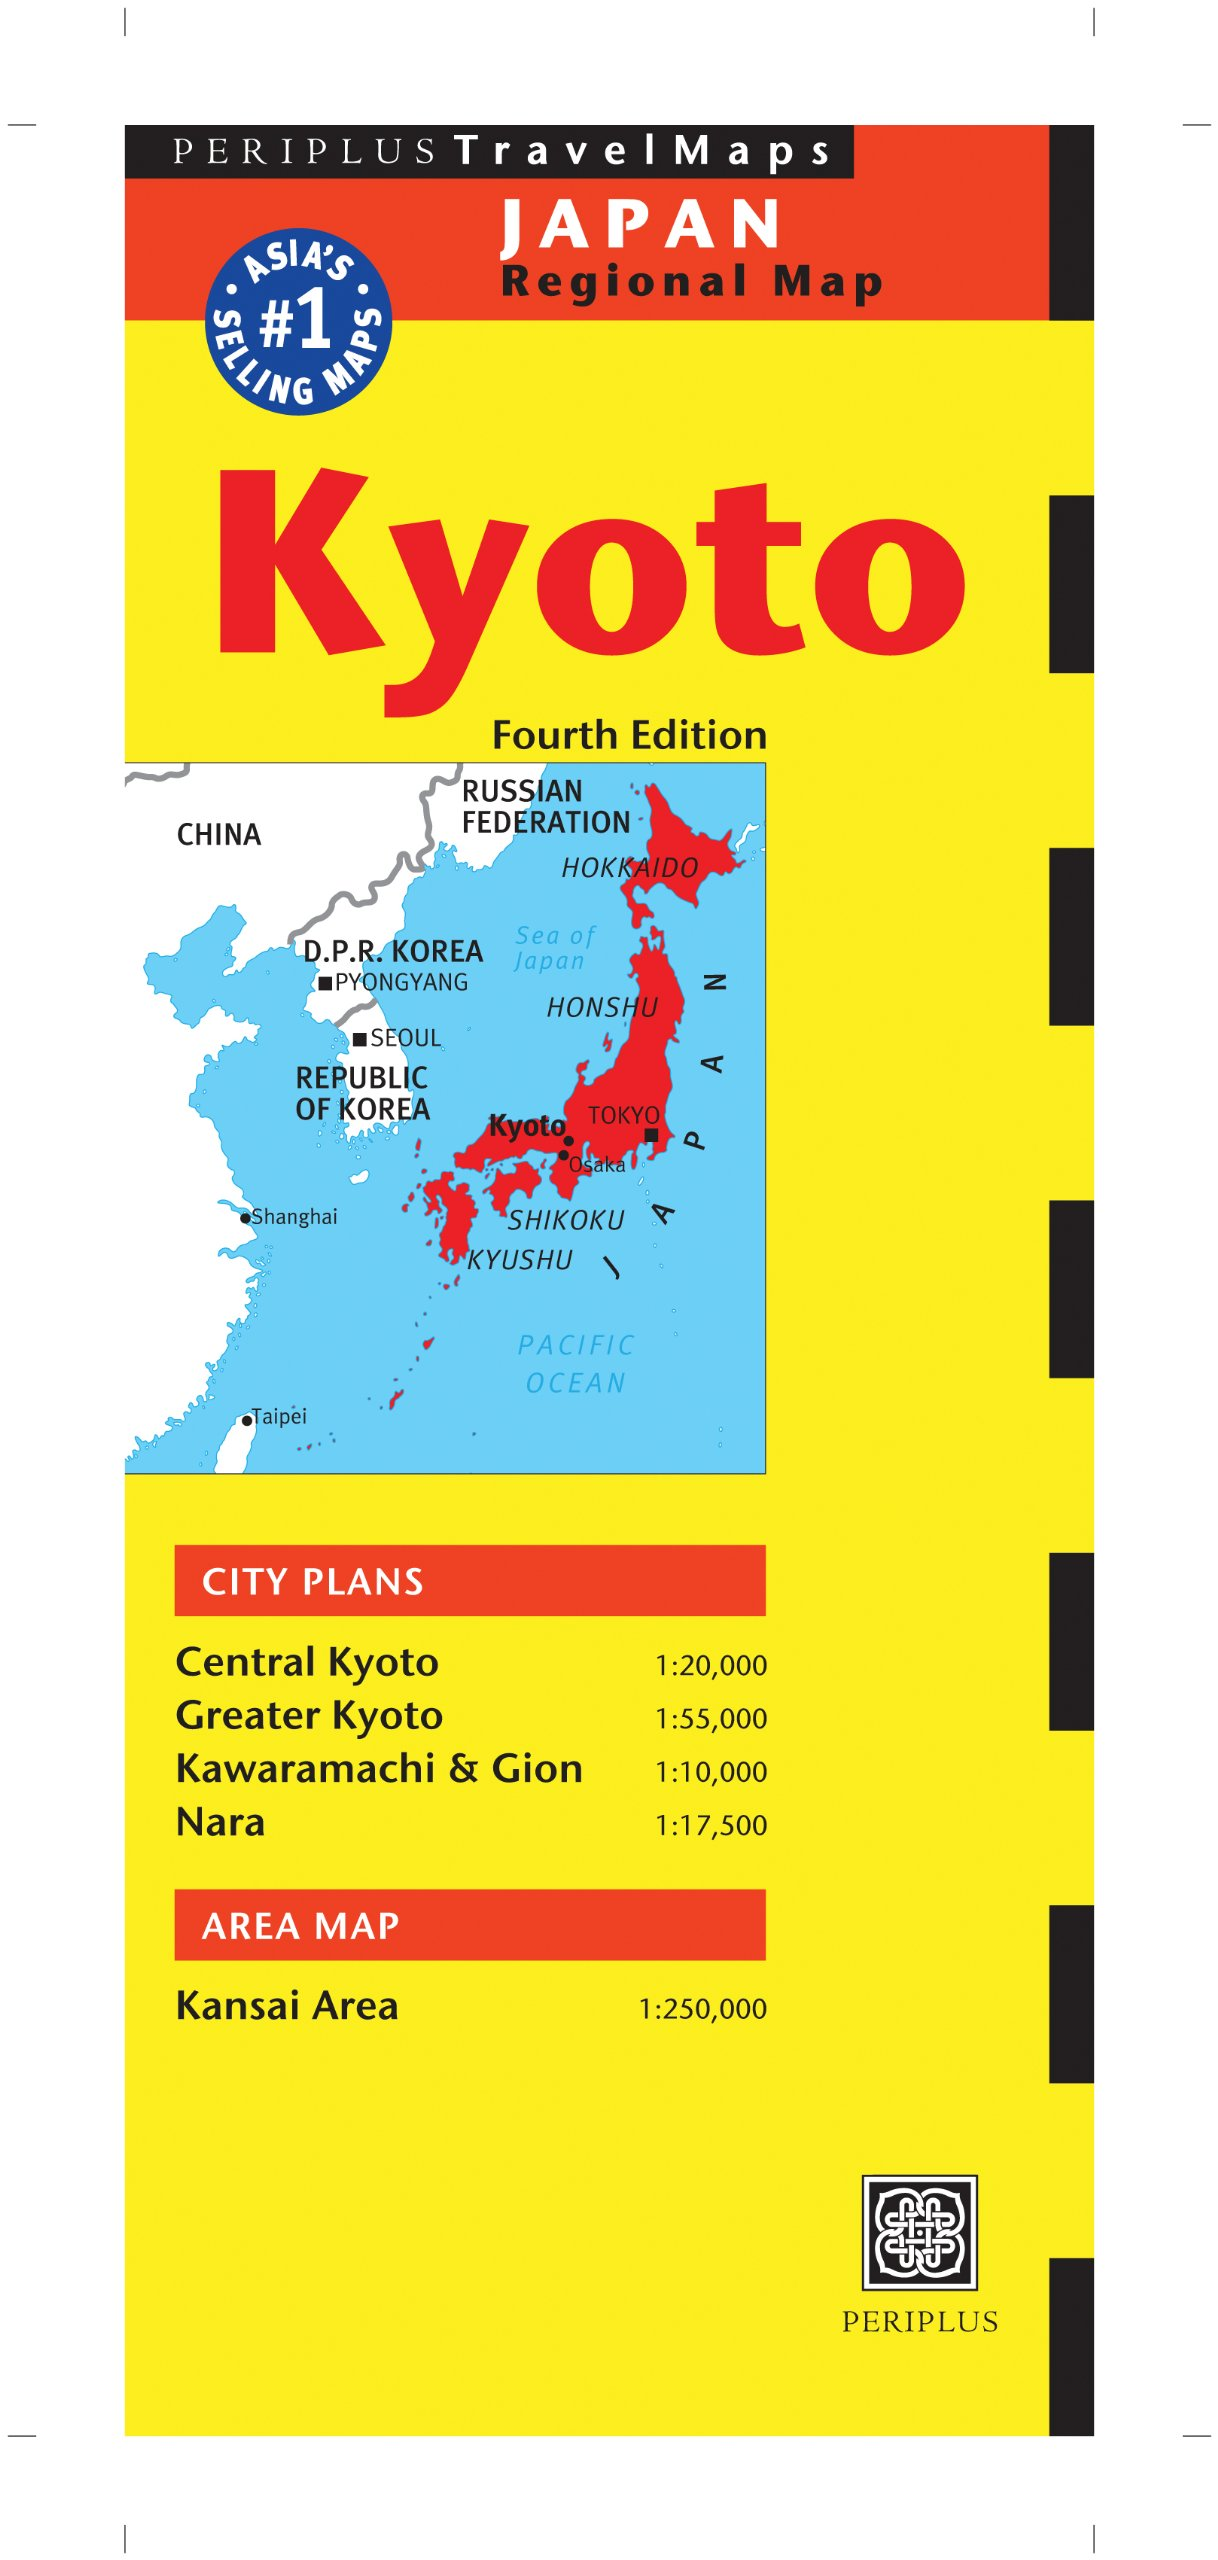 Kyoto Travel Map Fourth Edition Periplus Travel Maps: Amazon.es: Periplus Editors: Libros en idiomas extranjeros